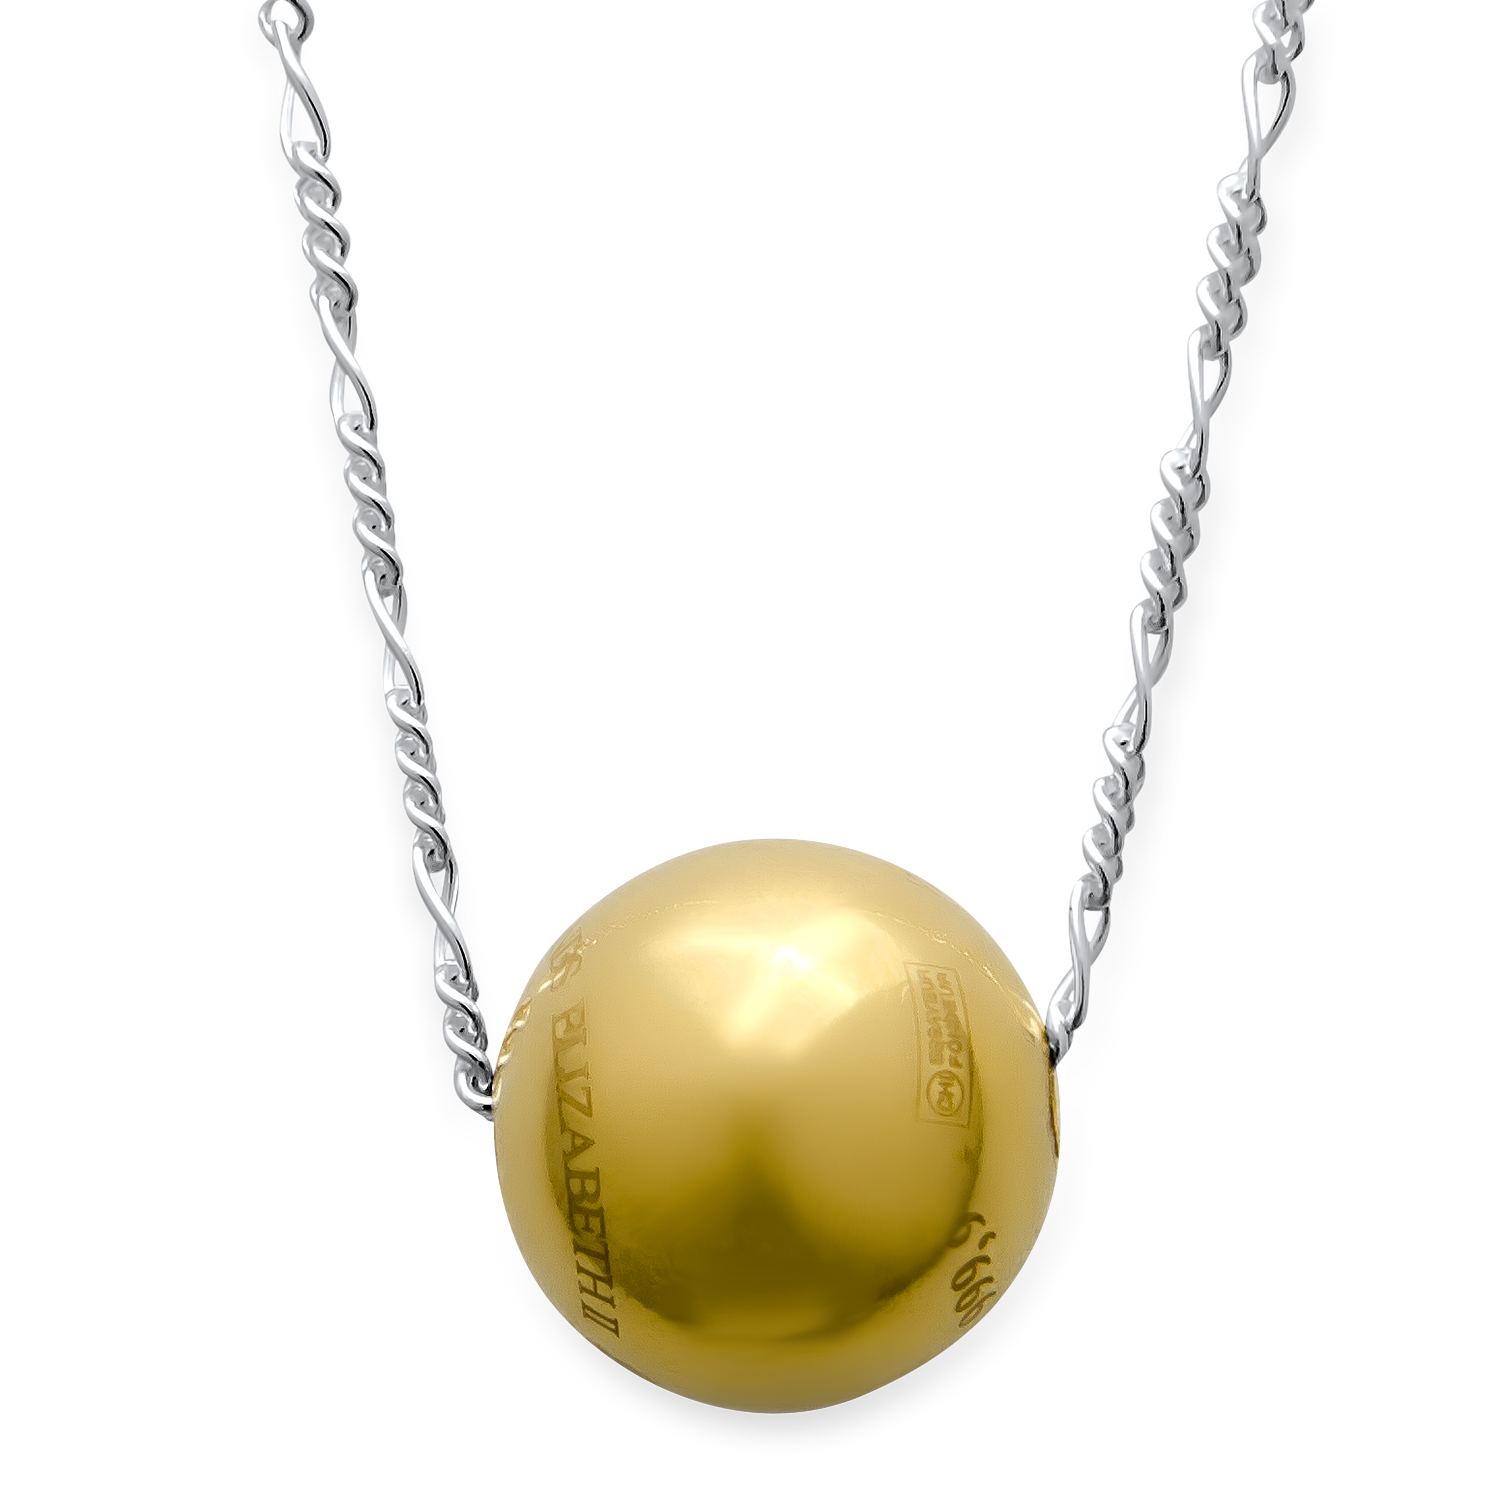 2015 2 gm Cook Islands $10 Gold Sphere Valcambi (w/Silver Chain)